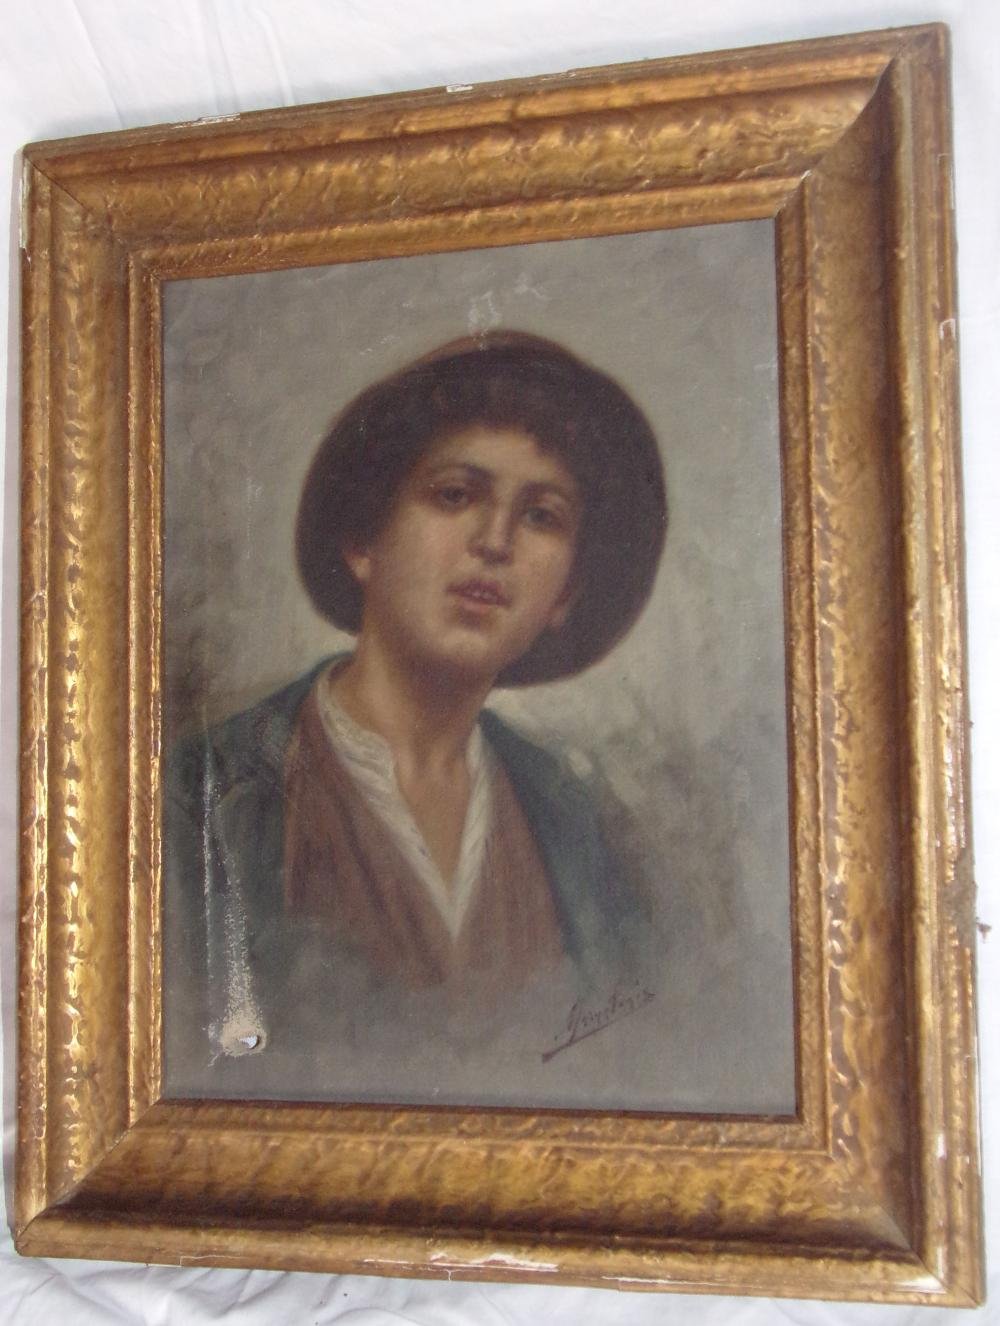 "Oil on canvas painting, portrait of a young man wearing a hat with brim & open collar, signed lower right, signature partially illegible, some paint loss & hole in canvas at lower left, mounted in a gold leaf frame, some gold leaf missing throughout, 10 ½"" x 8 ¼""; frame - 14"" x 11 ¾"""